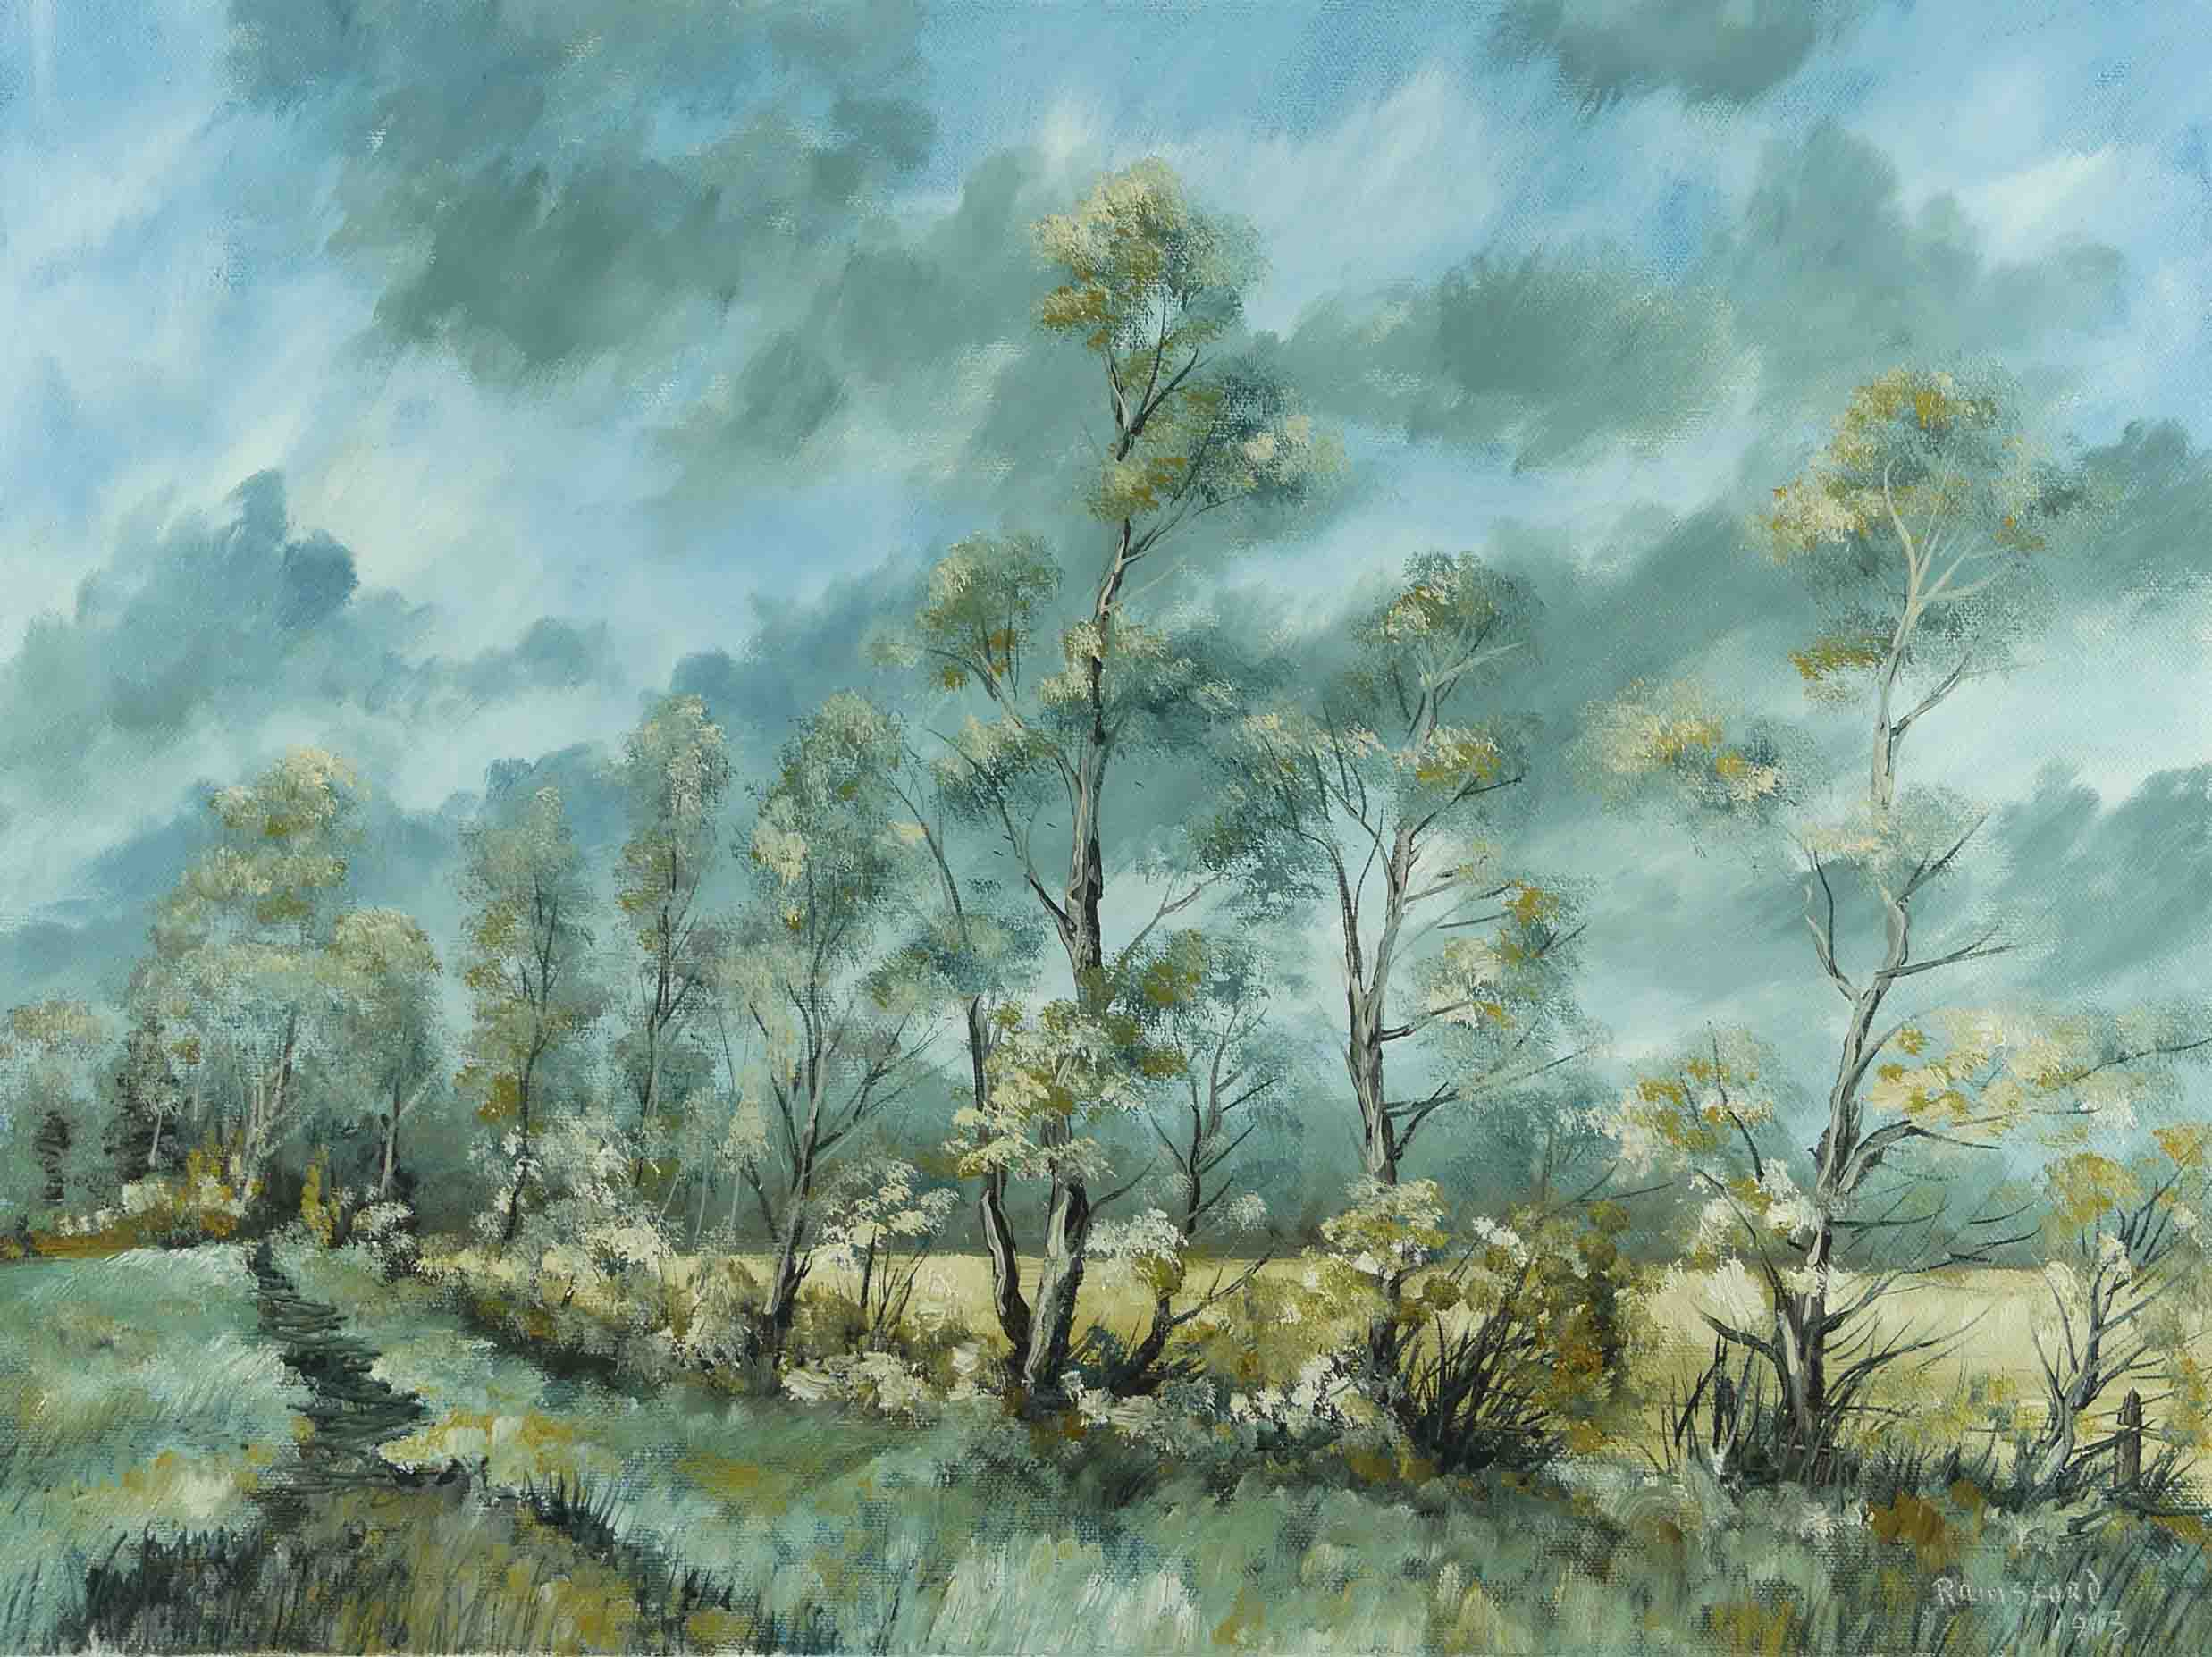 How Long To Dry Oil Painting Before Varnishing